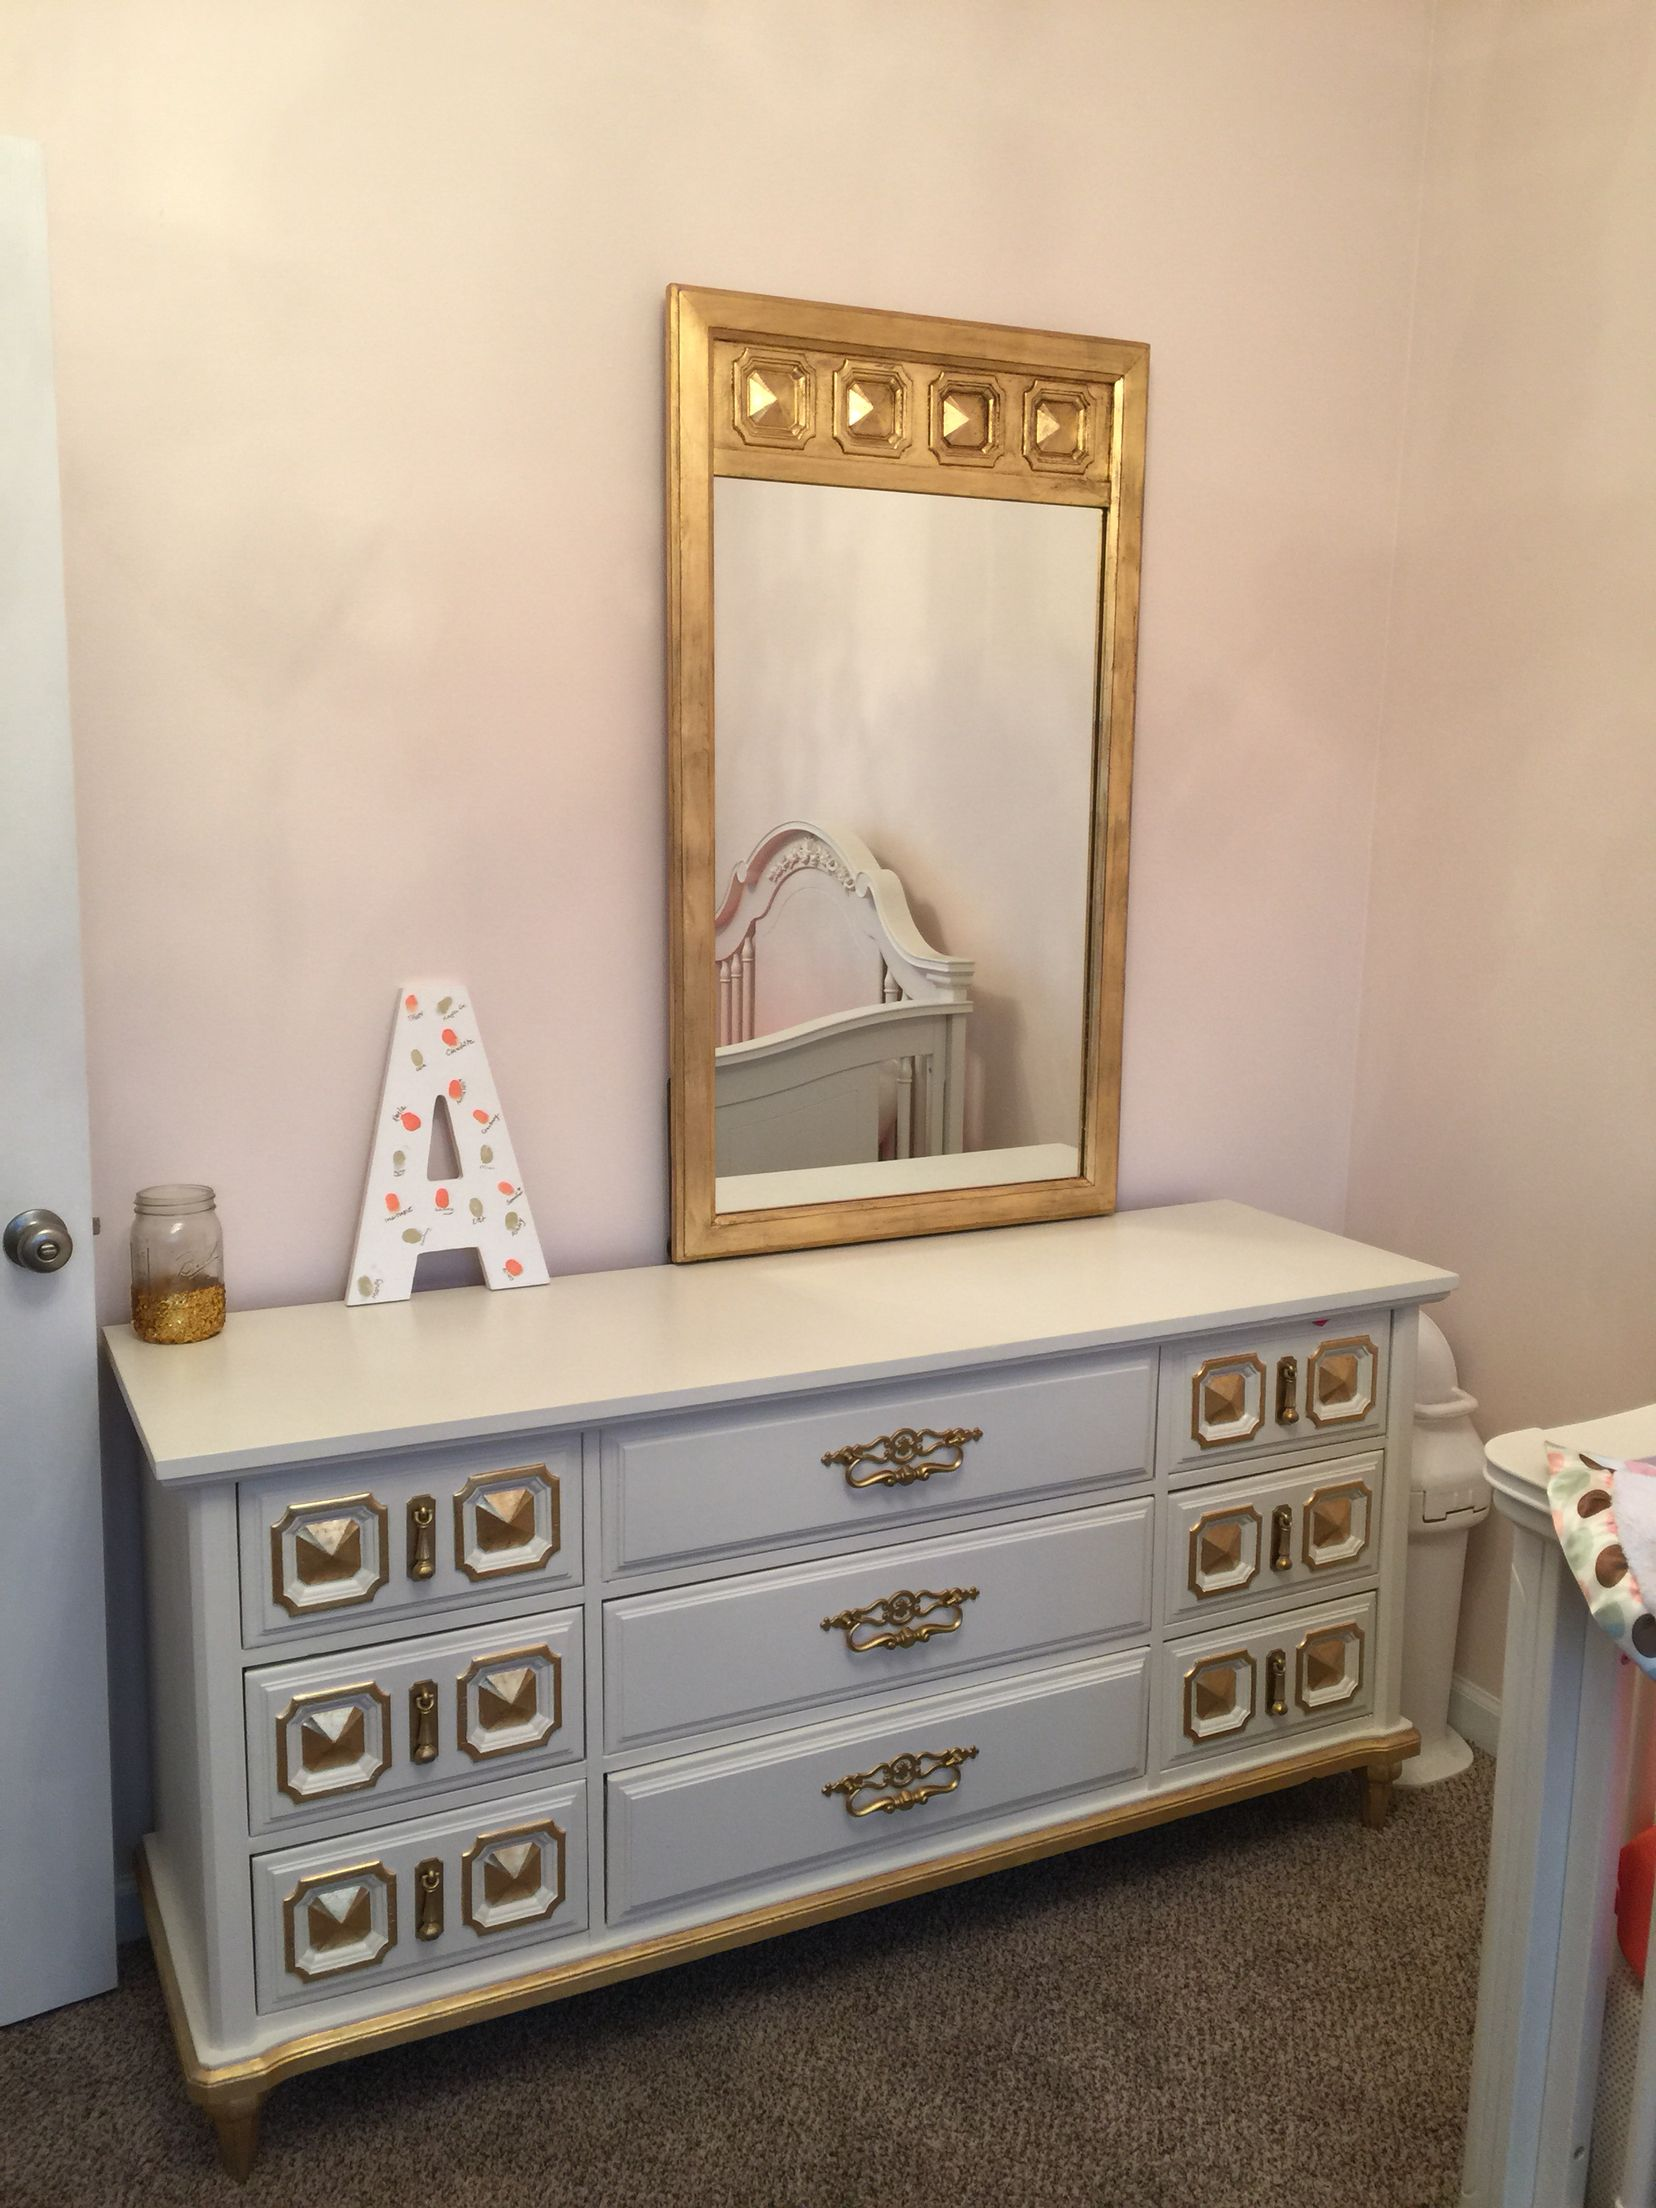 Light Coral Walls Partial Finished Gold And Coral Nursery Refinished Dresser With